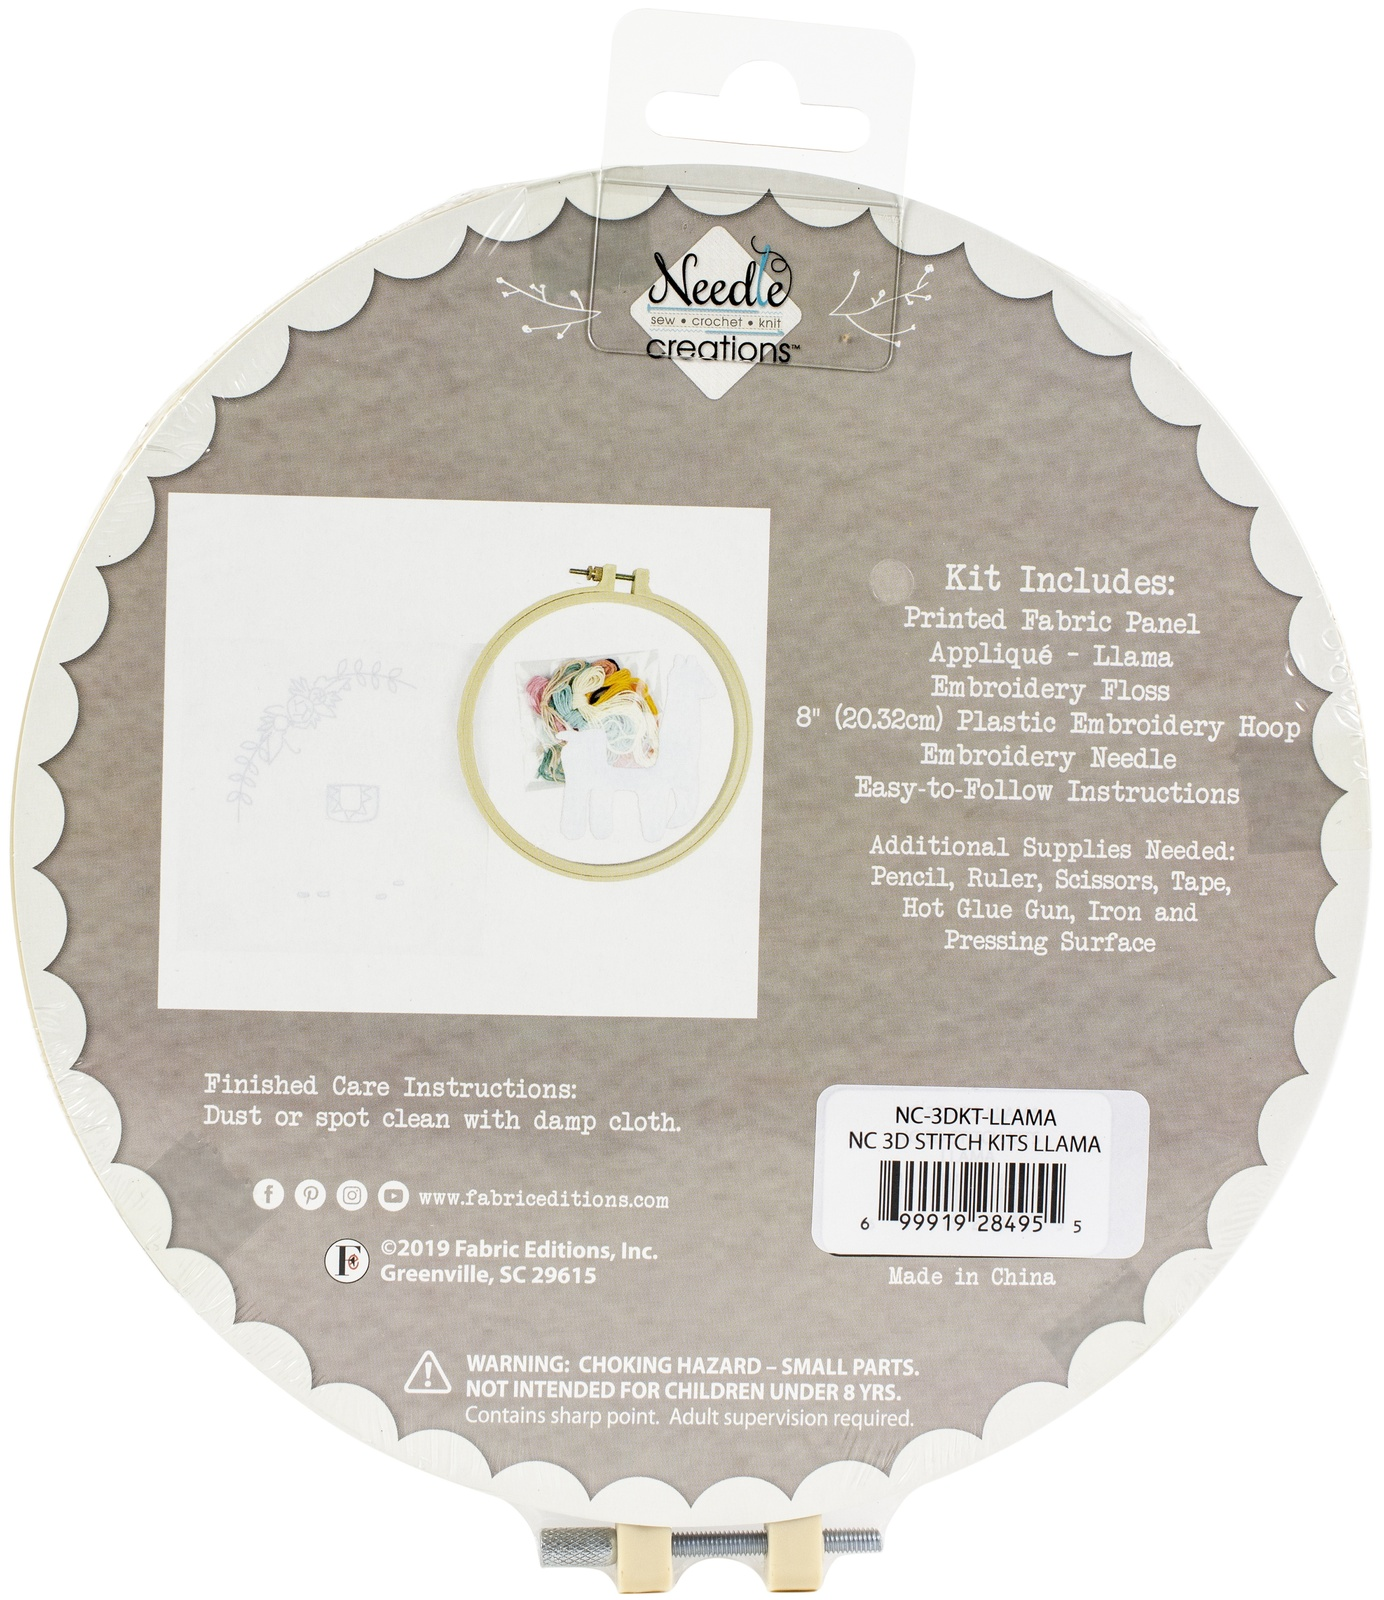 "Primary image for Fabric Editions Needle Creations 3D Stitch Kits 8""-Llama"